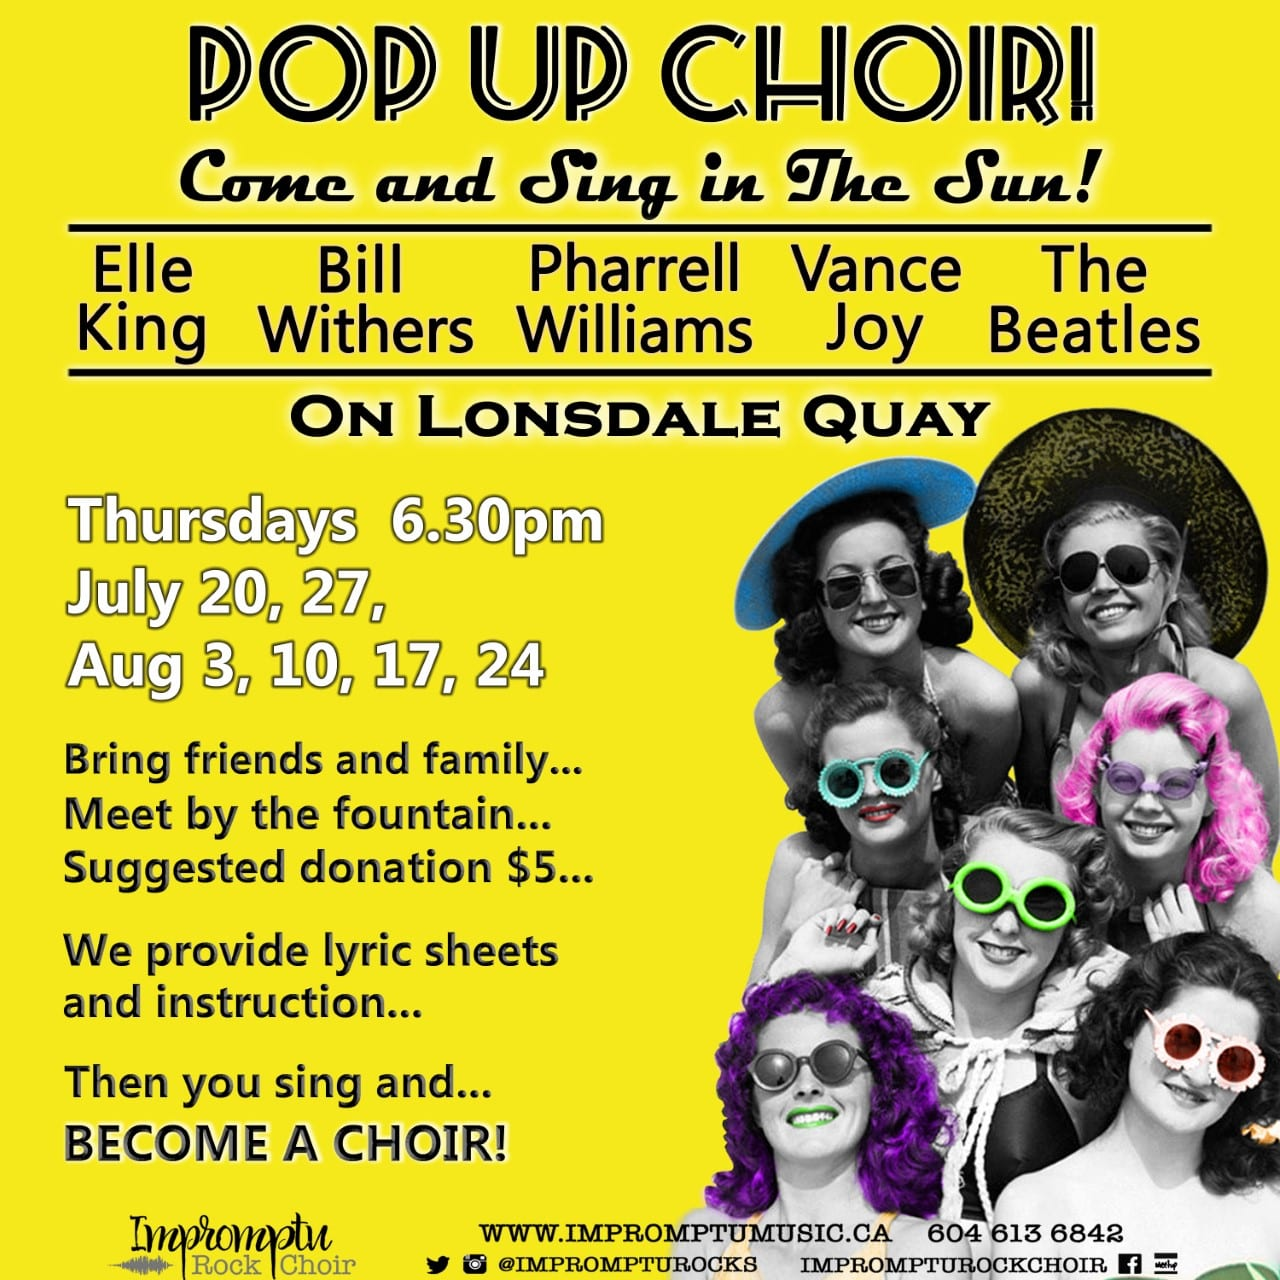 Sing In The Sun On Lonsdale Quay! Beatles! Elle King! Bill Withers! Vance Joy! Simon & Garfunkel!